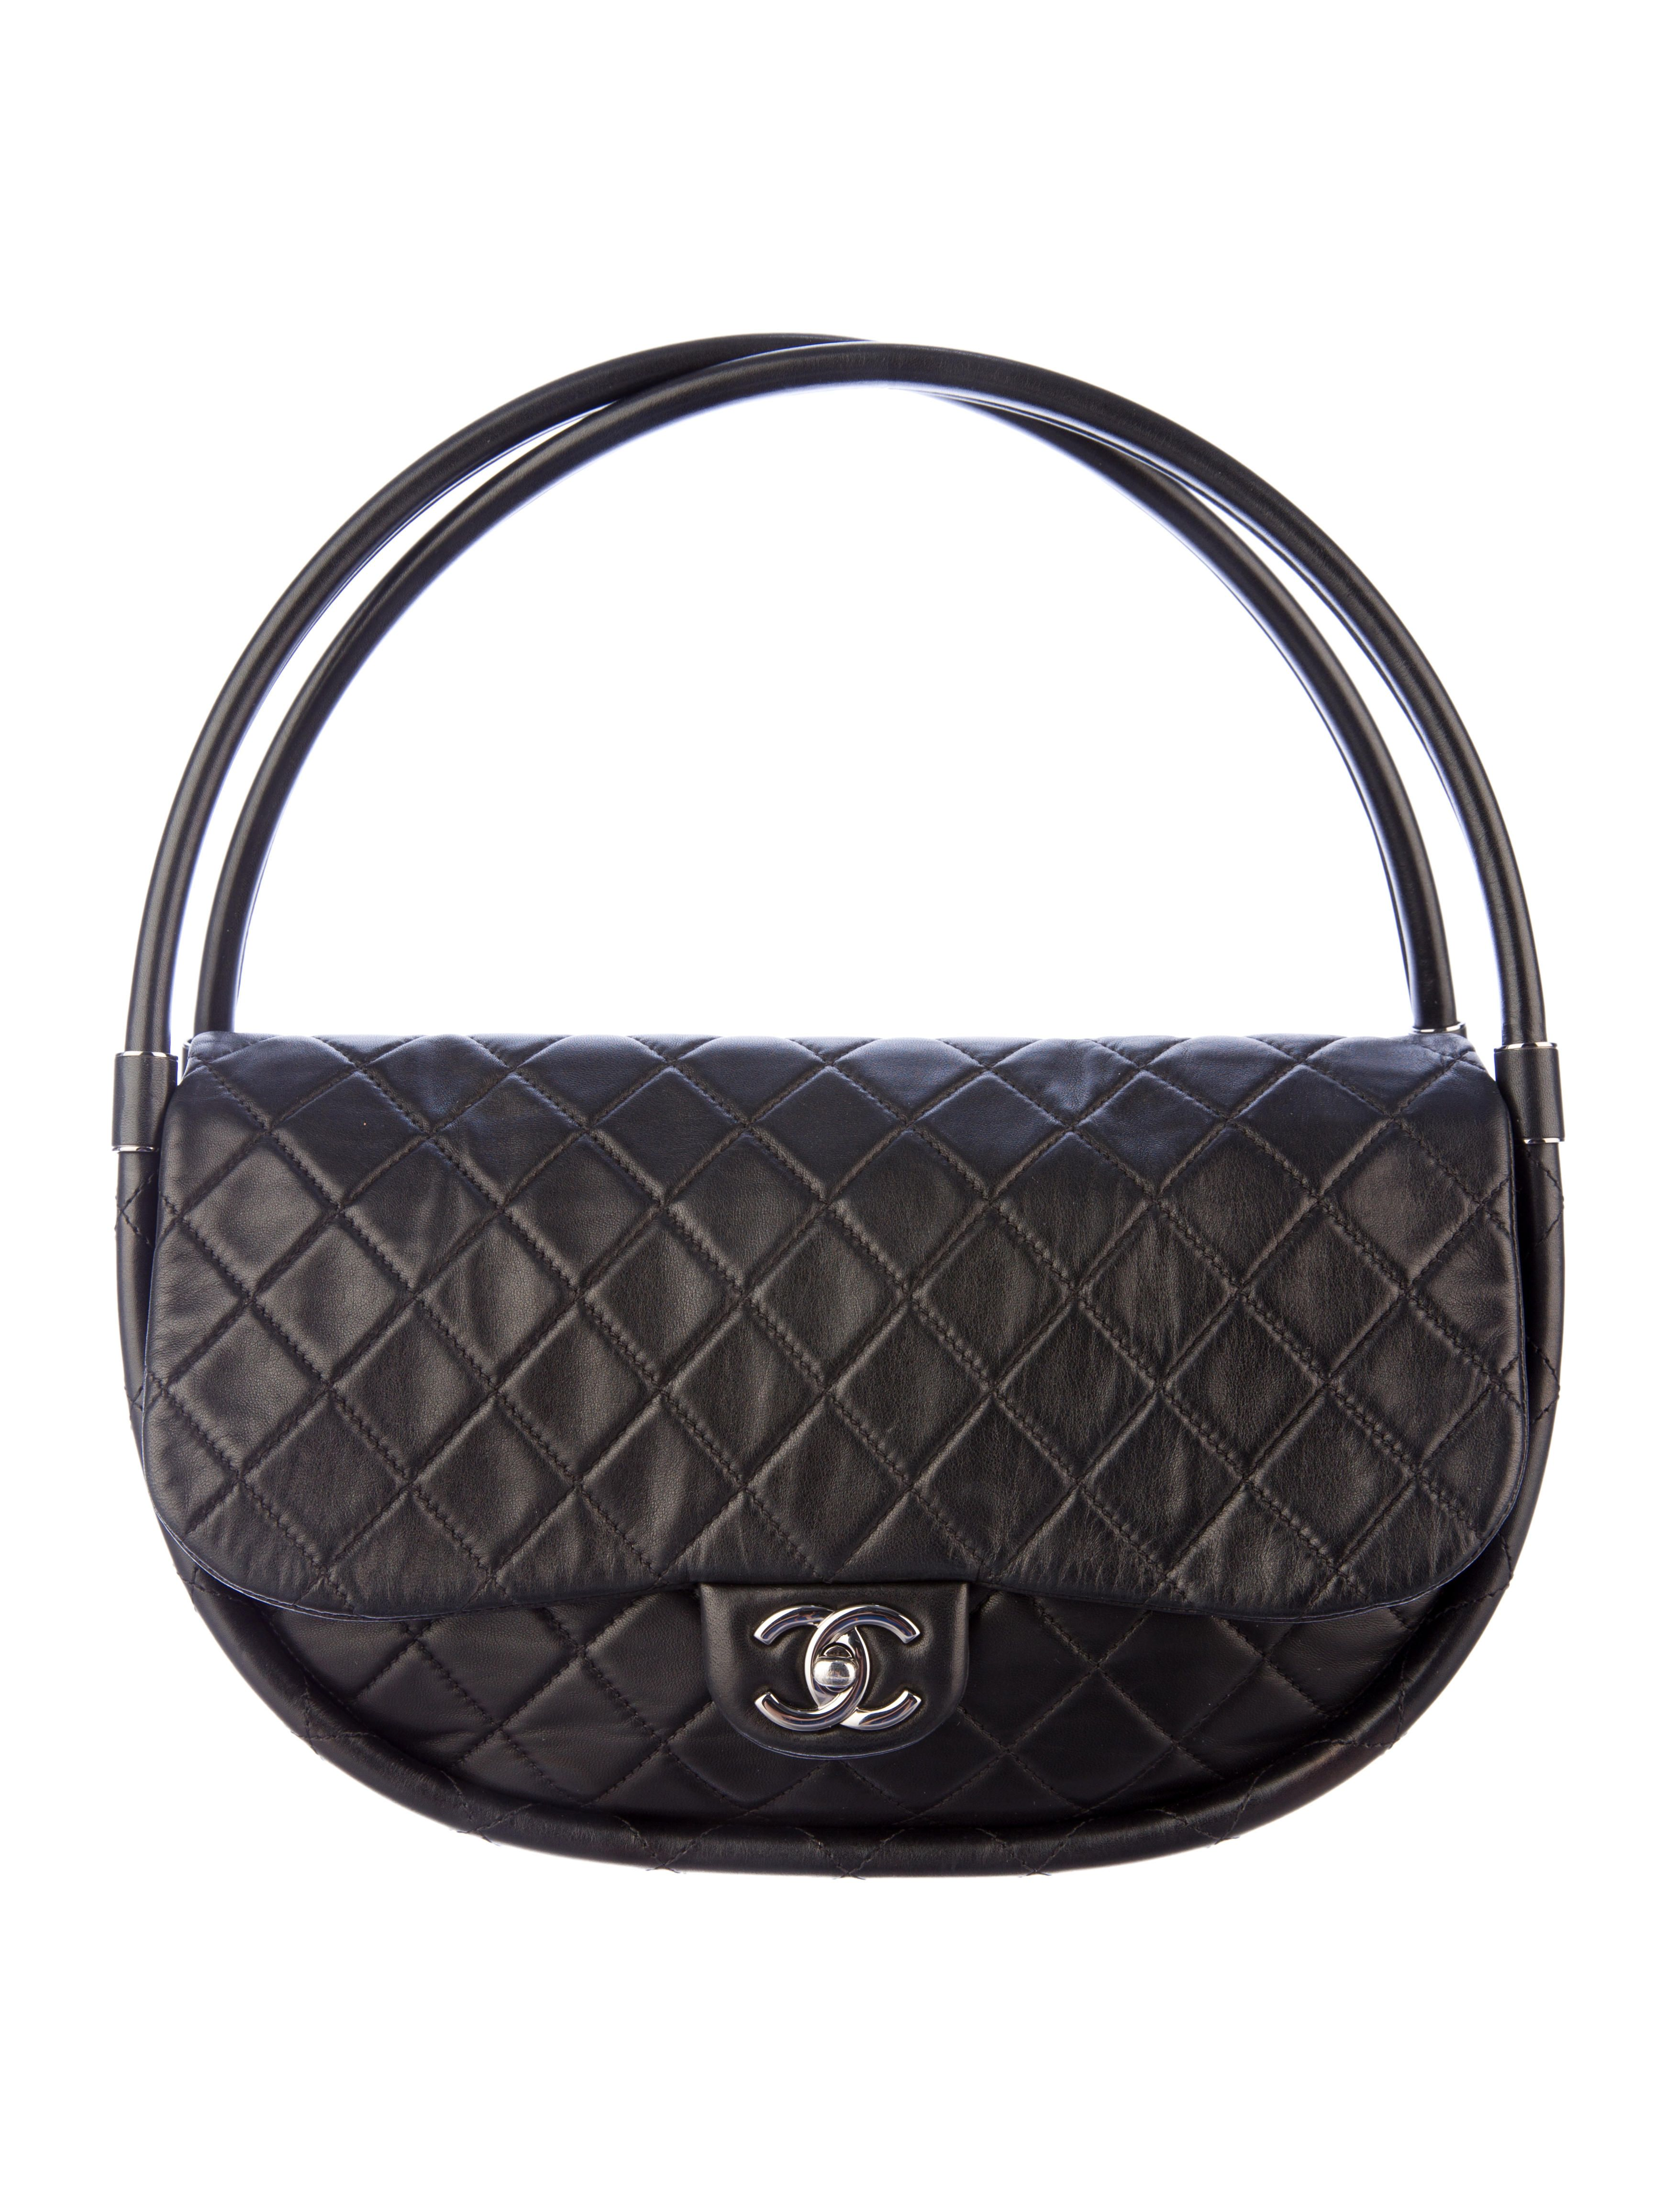 Free Shipping Even Faster For Incircle On Handbags In At Neiman Marcus